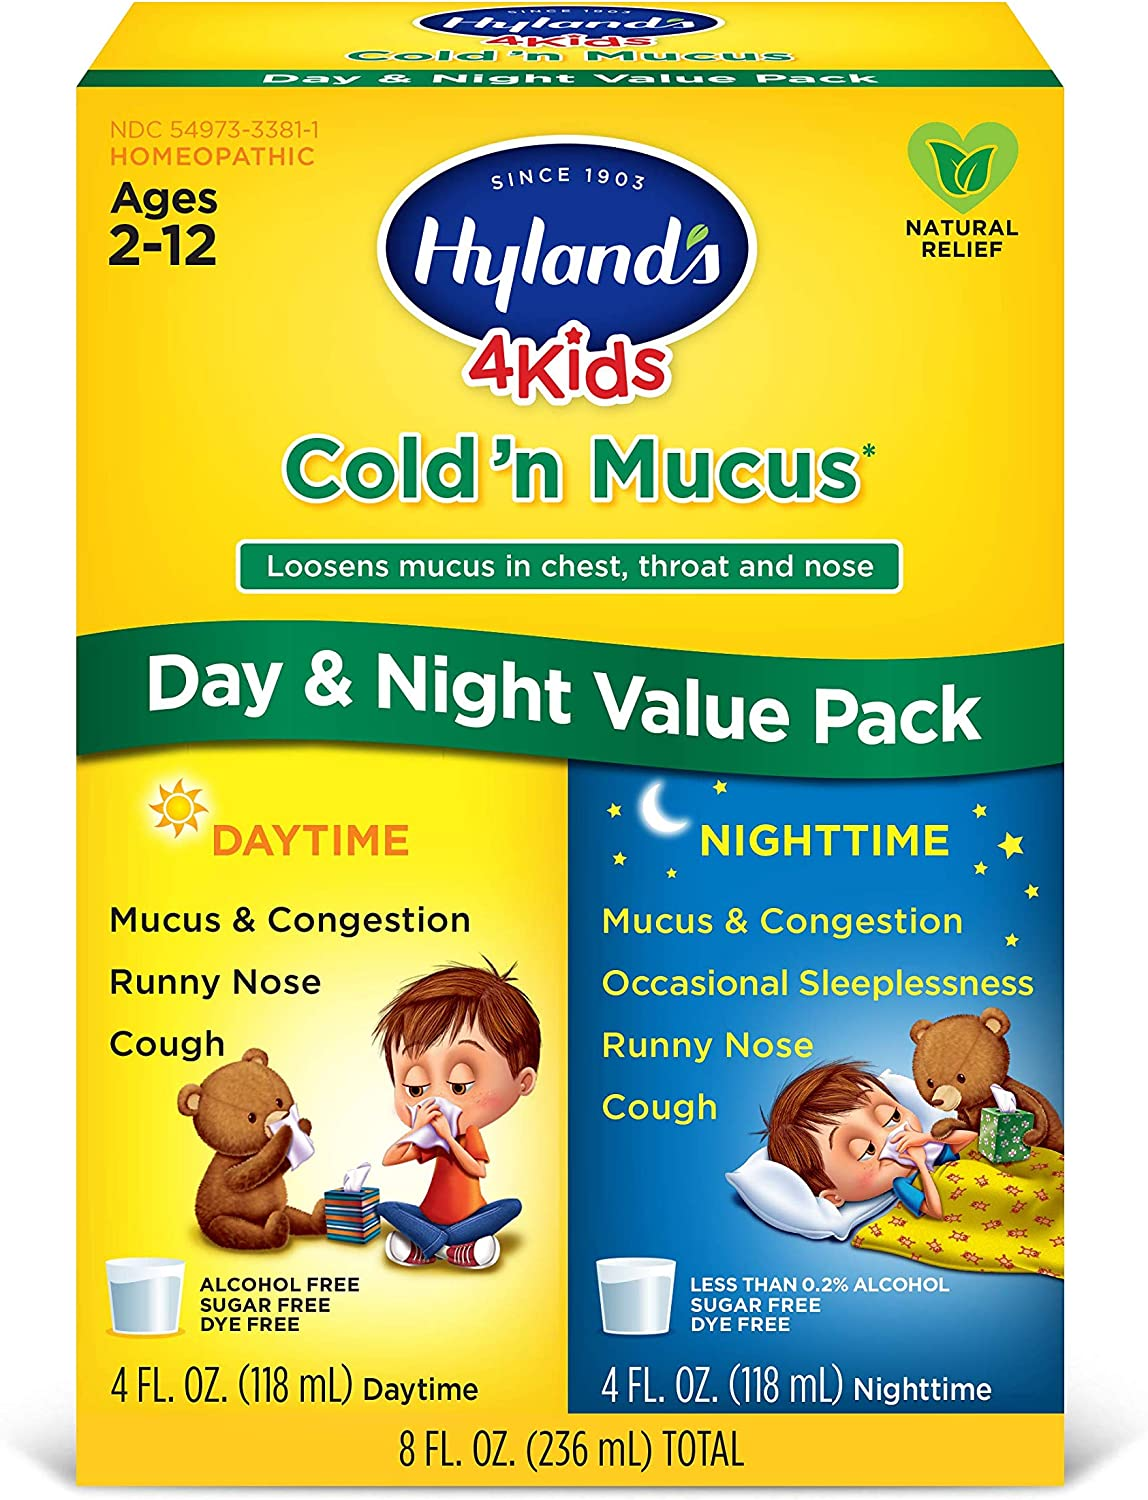 Kids Cold and Mucus Day and Night Value Pack by Hyland's 4Kids